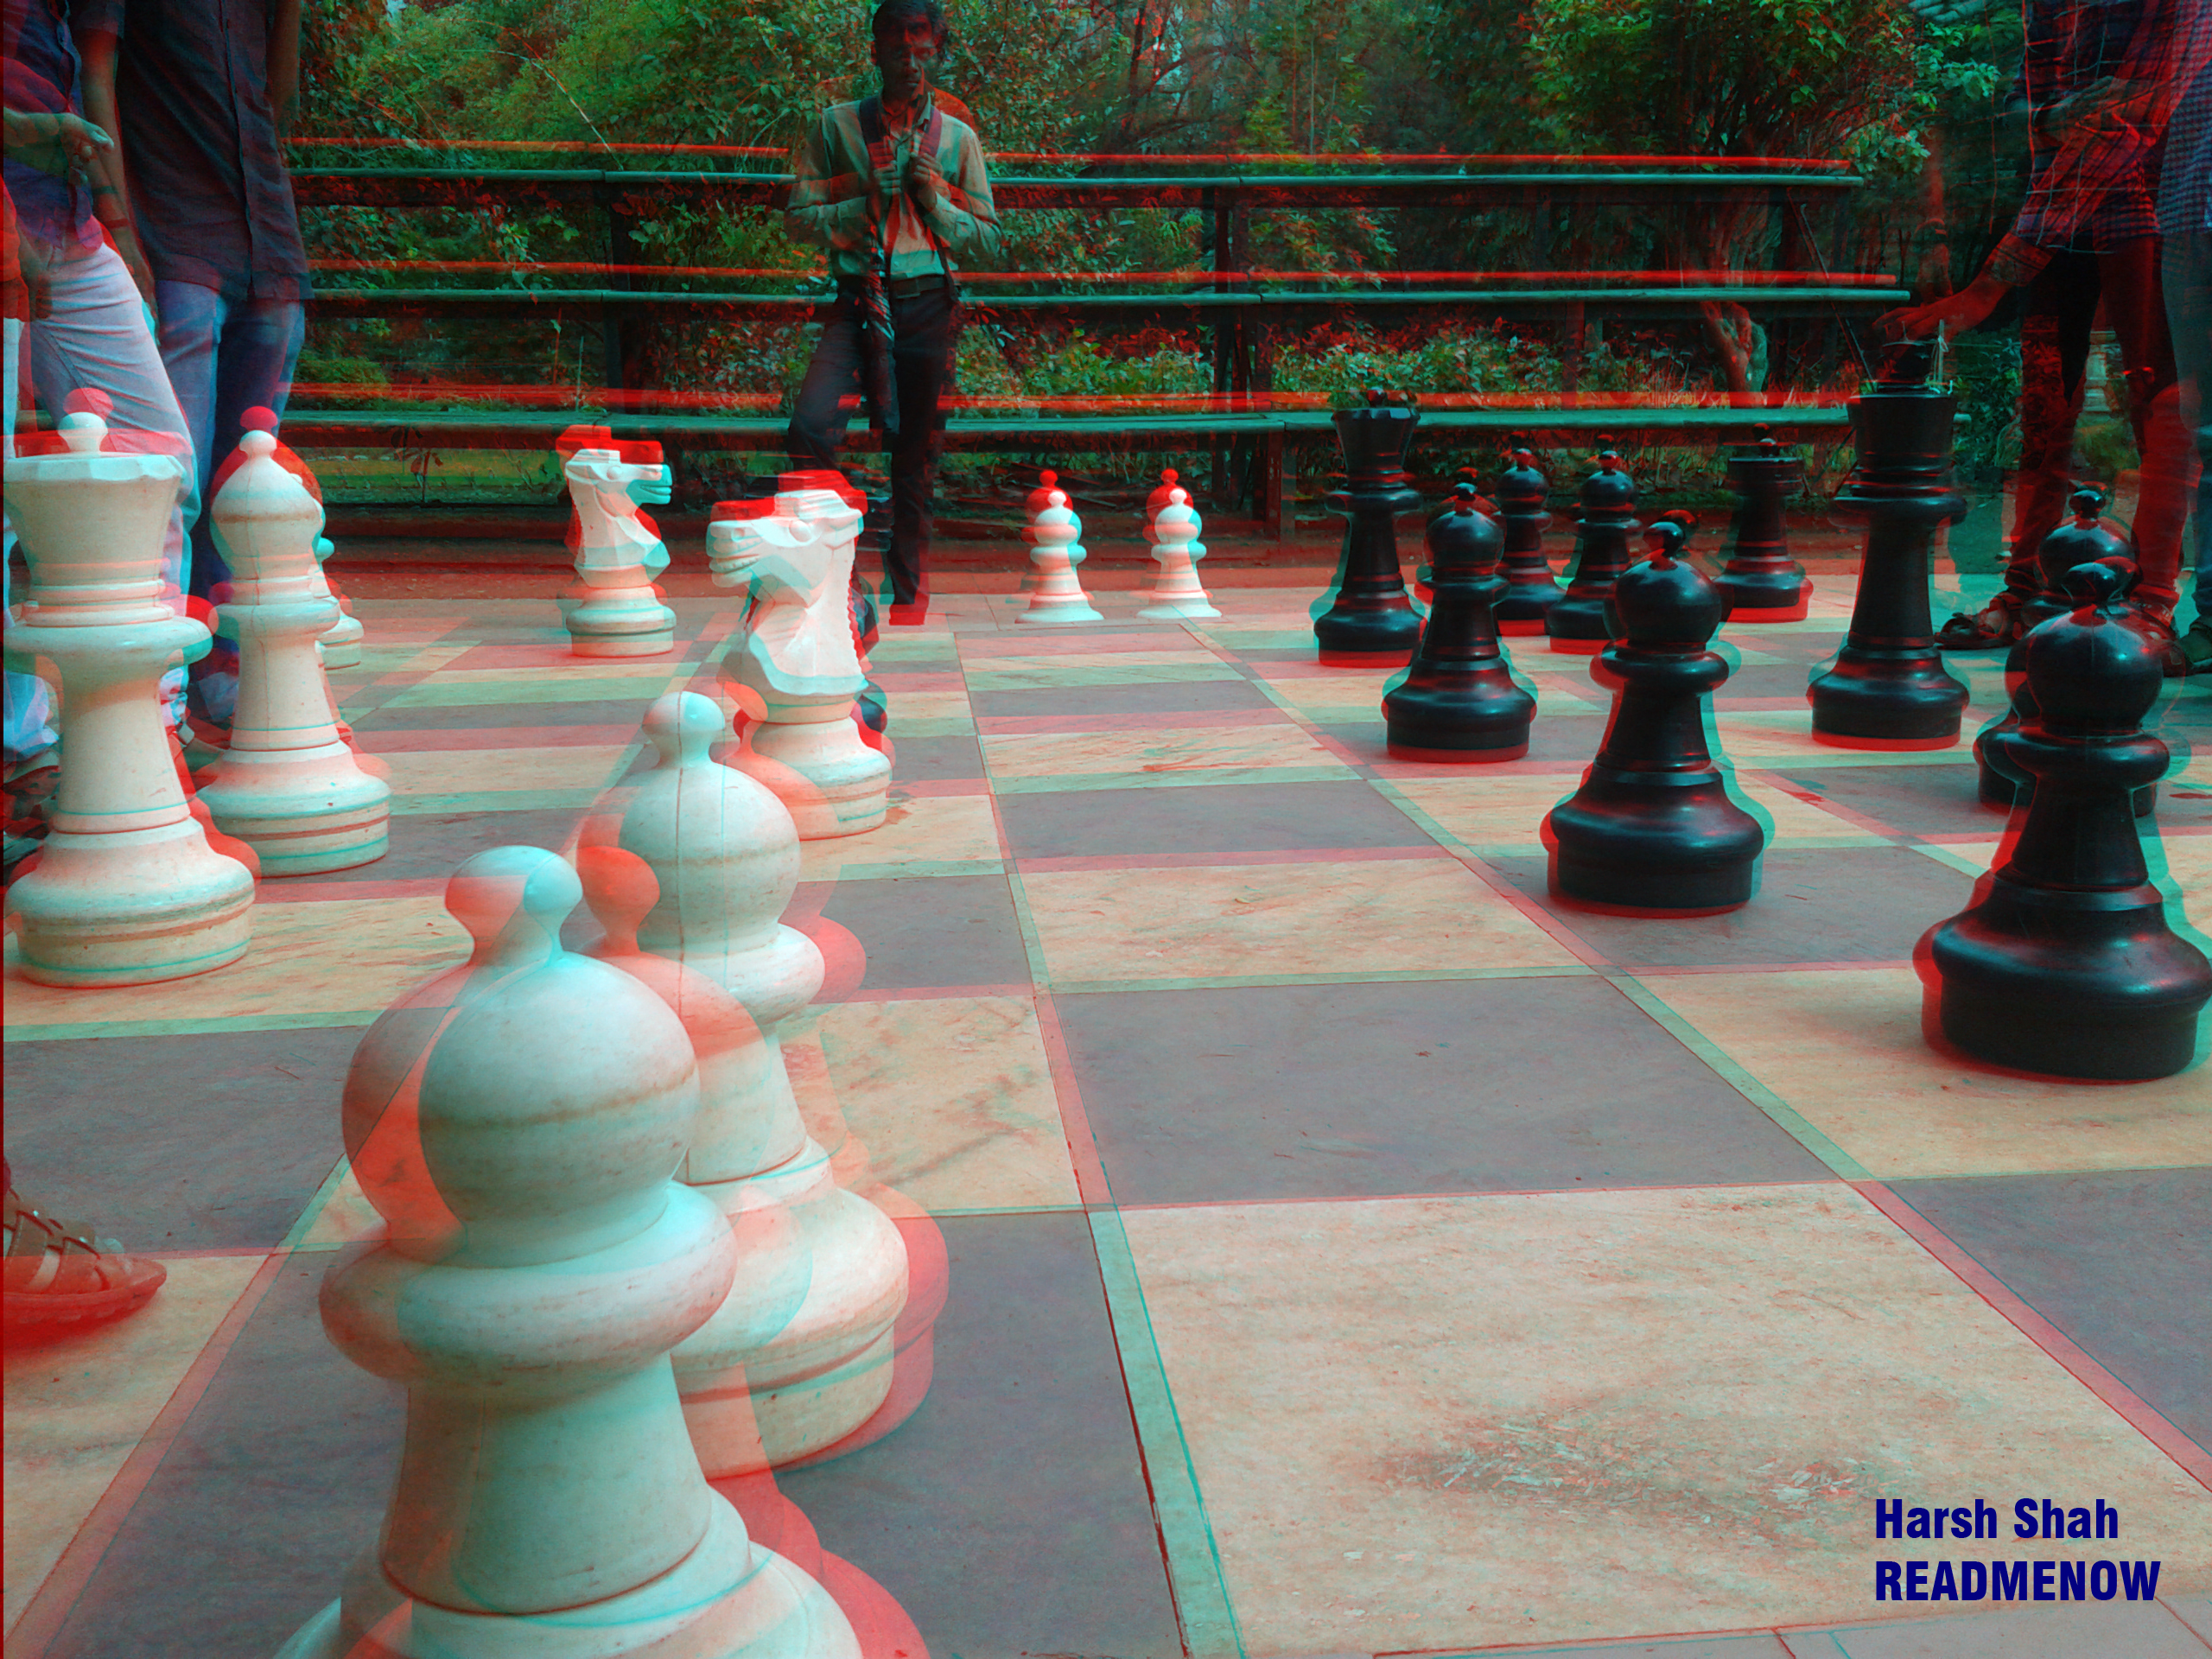 Make 3D anaglyph images in Photoshop